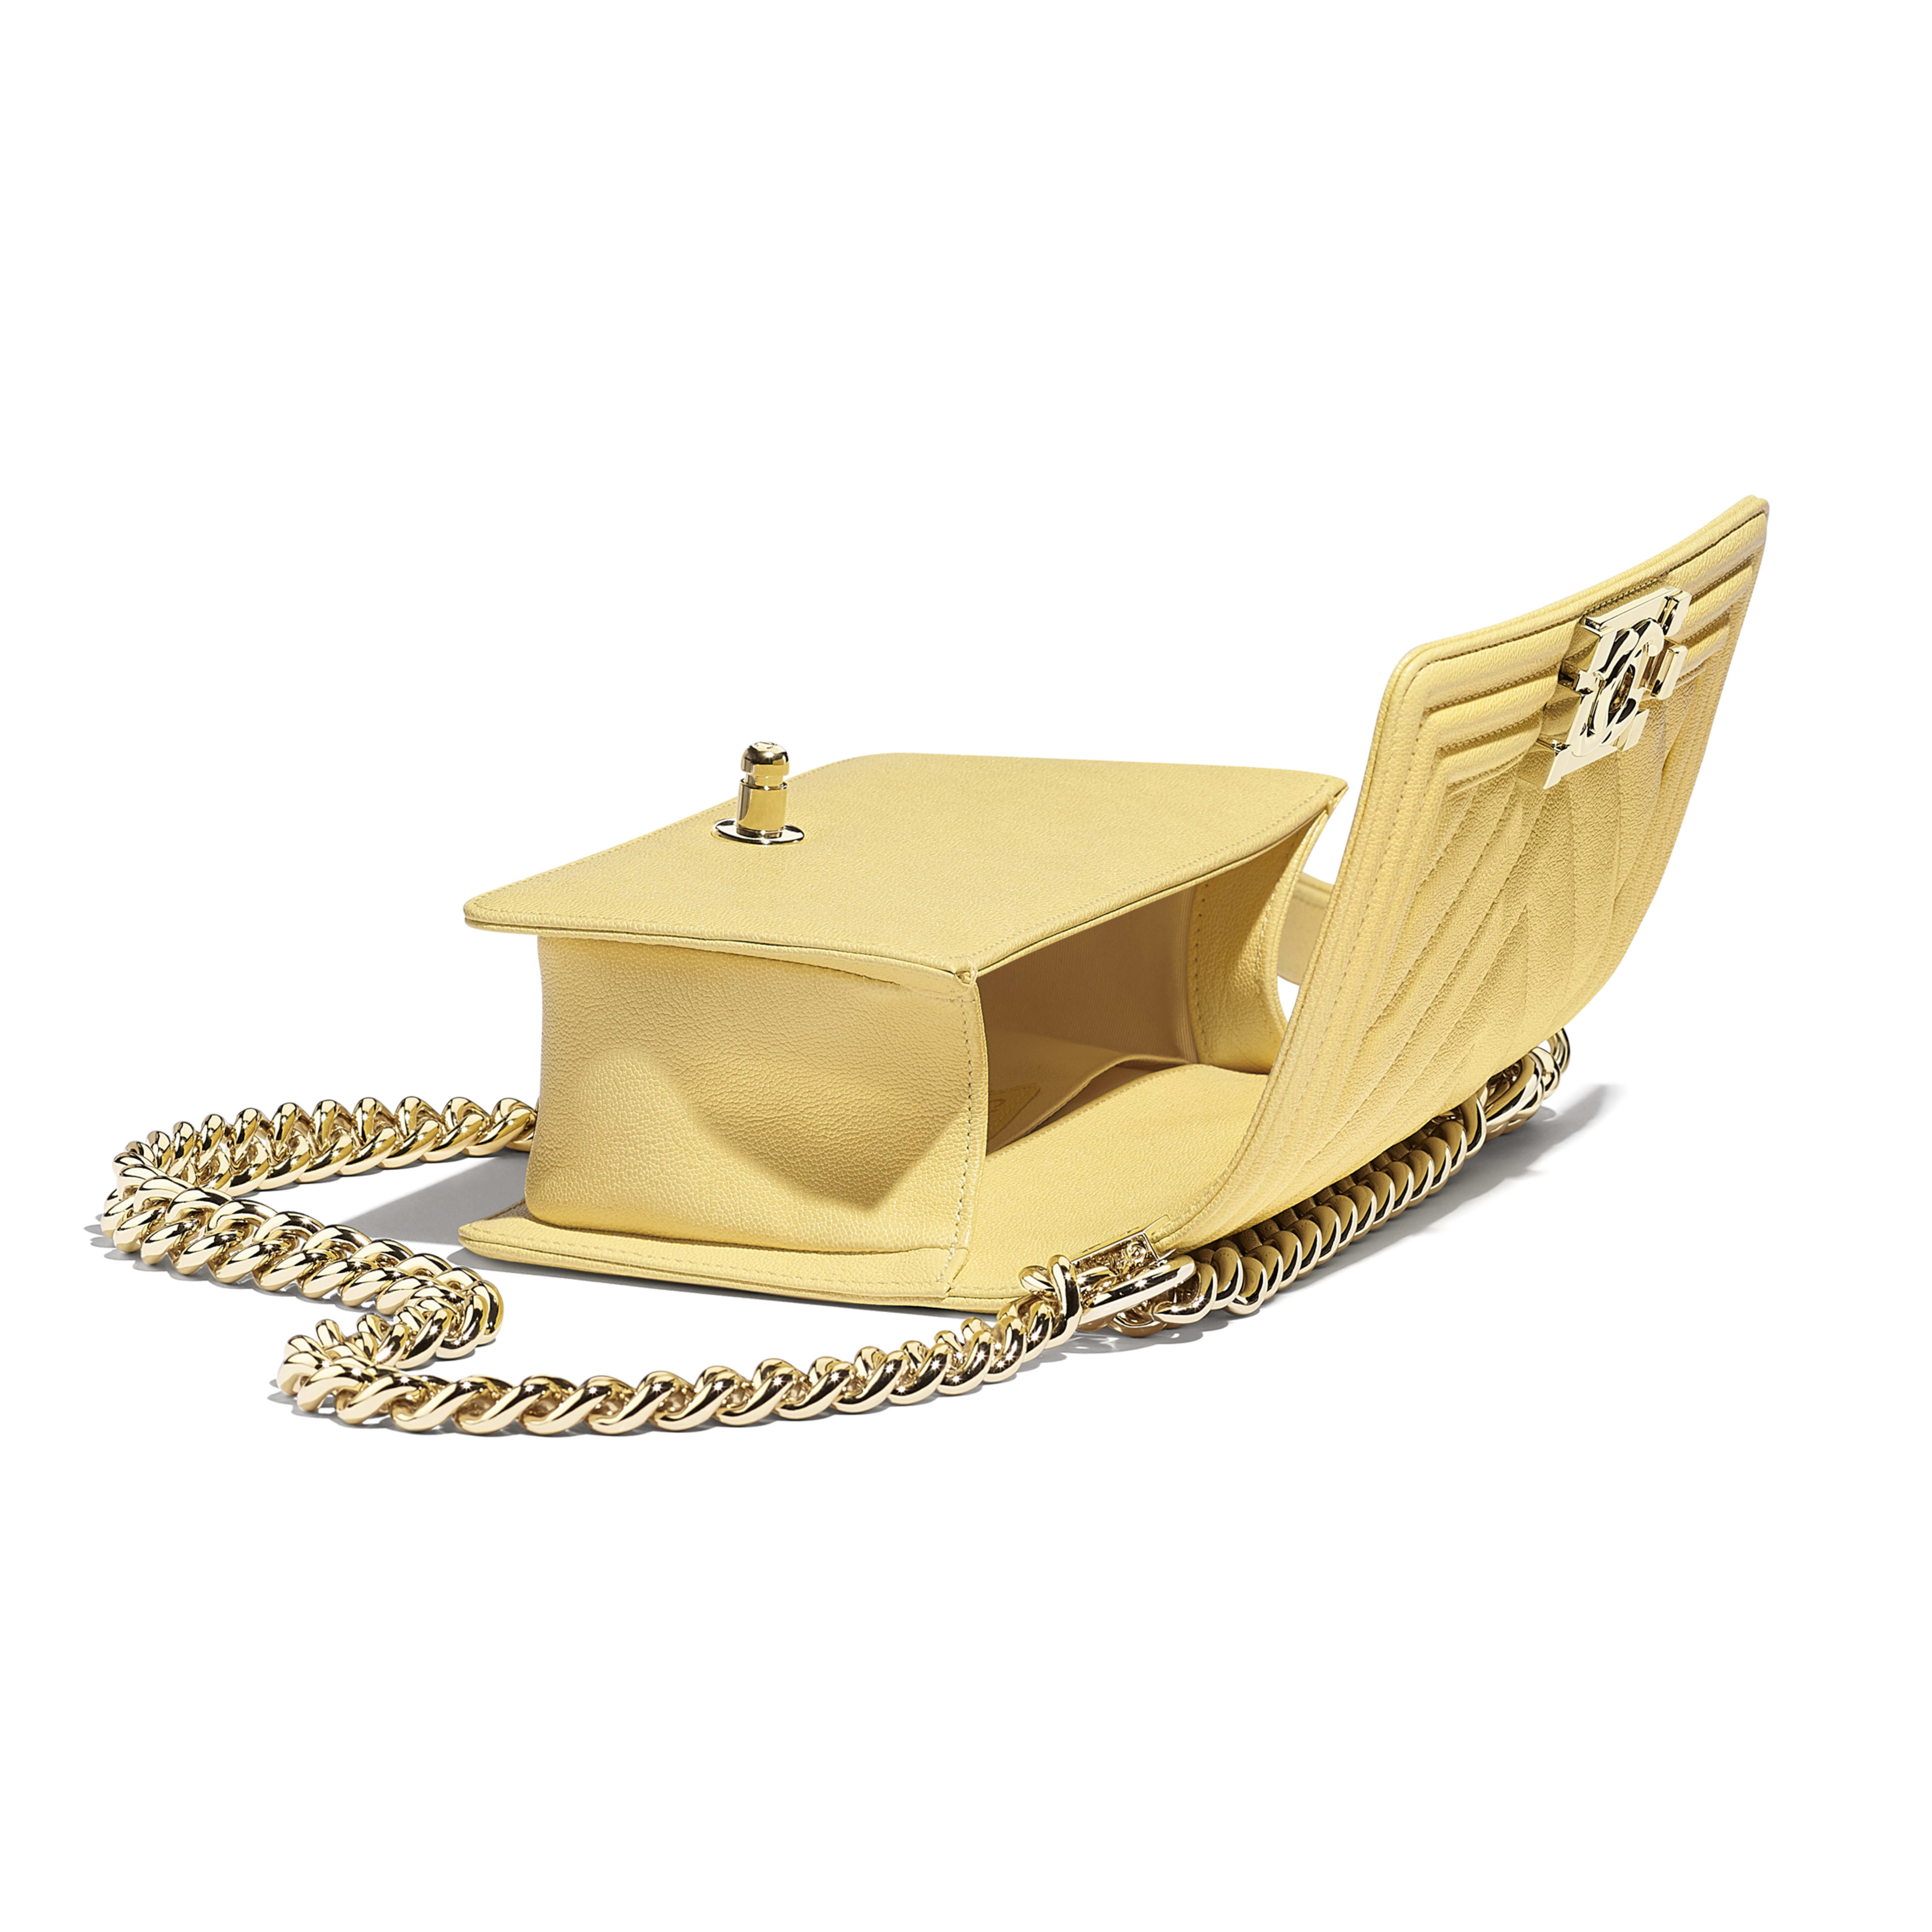 Small BOY CHANEL Handbag - Yellow - Grained Calfskin & Gold-Tone Metal - Other view - see full sized version